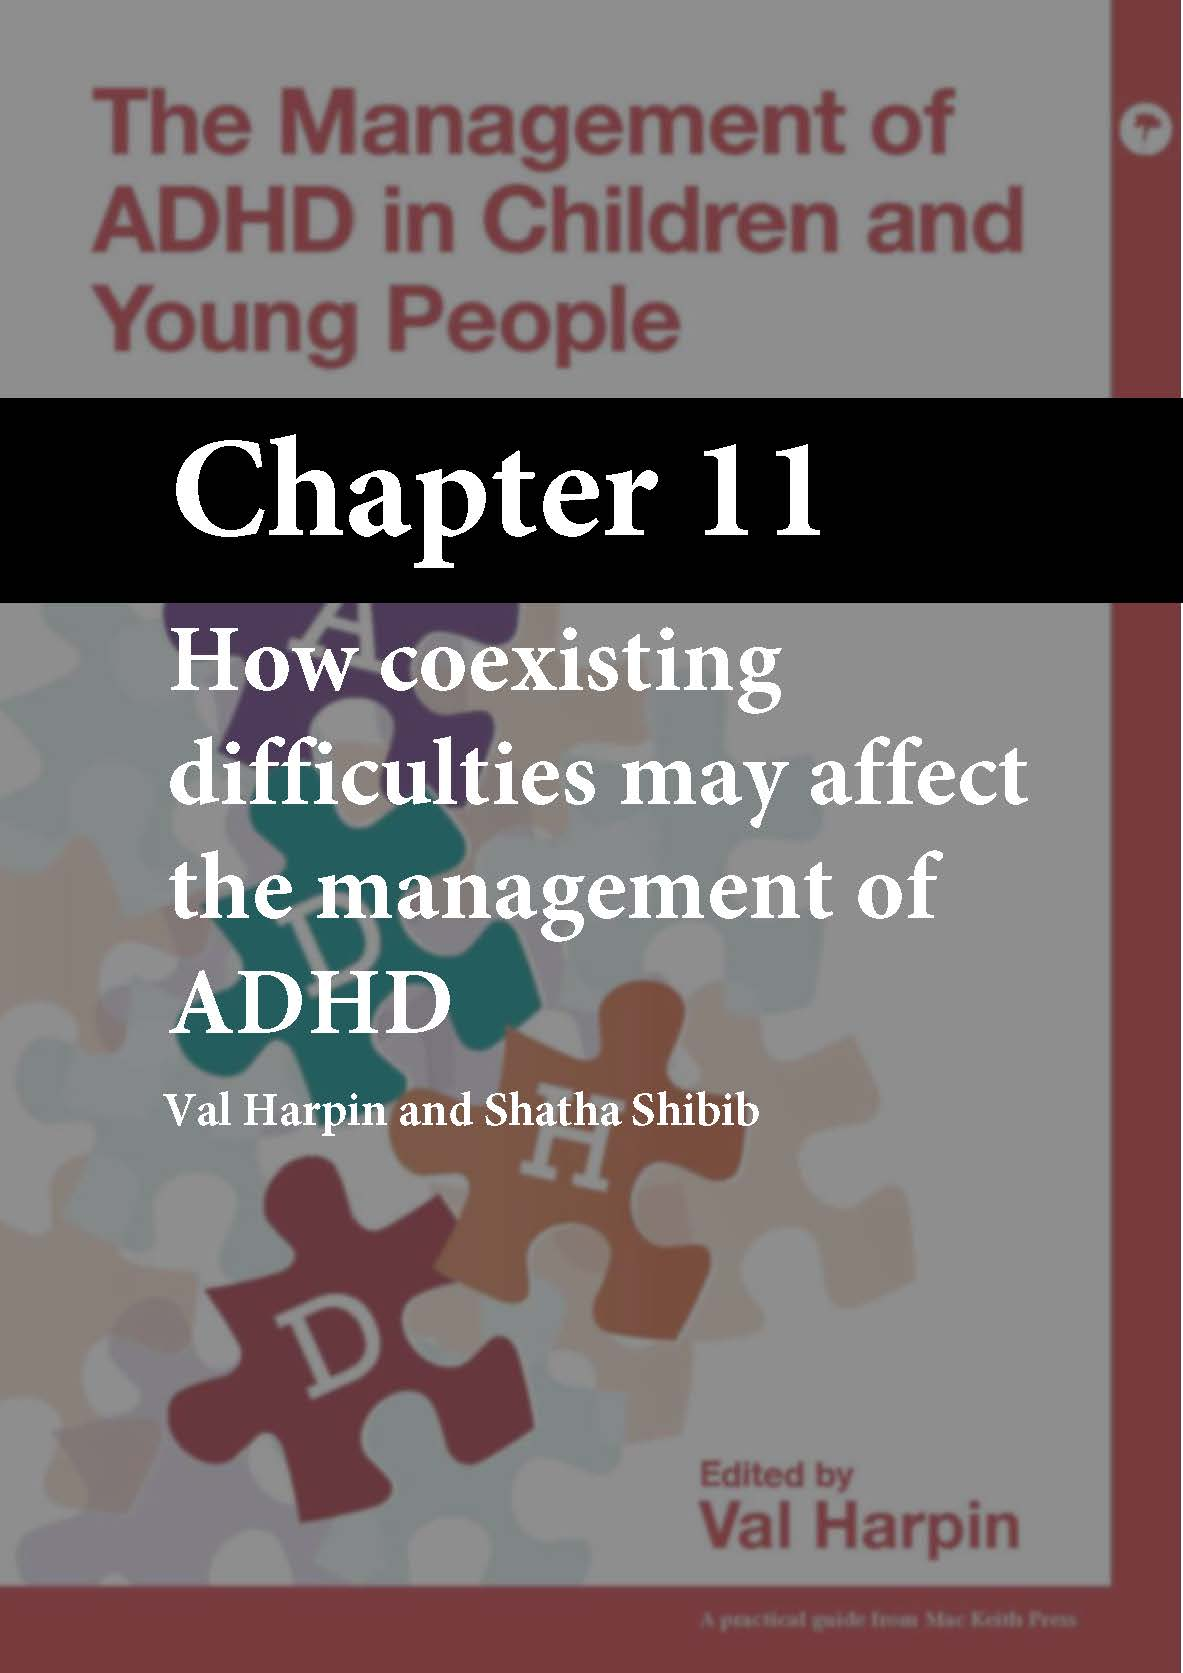 The Management of ADHD in Children and Young People, Harpin, Chapter 11 cover